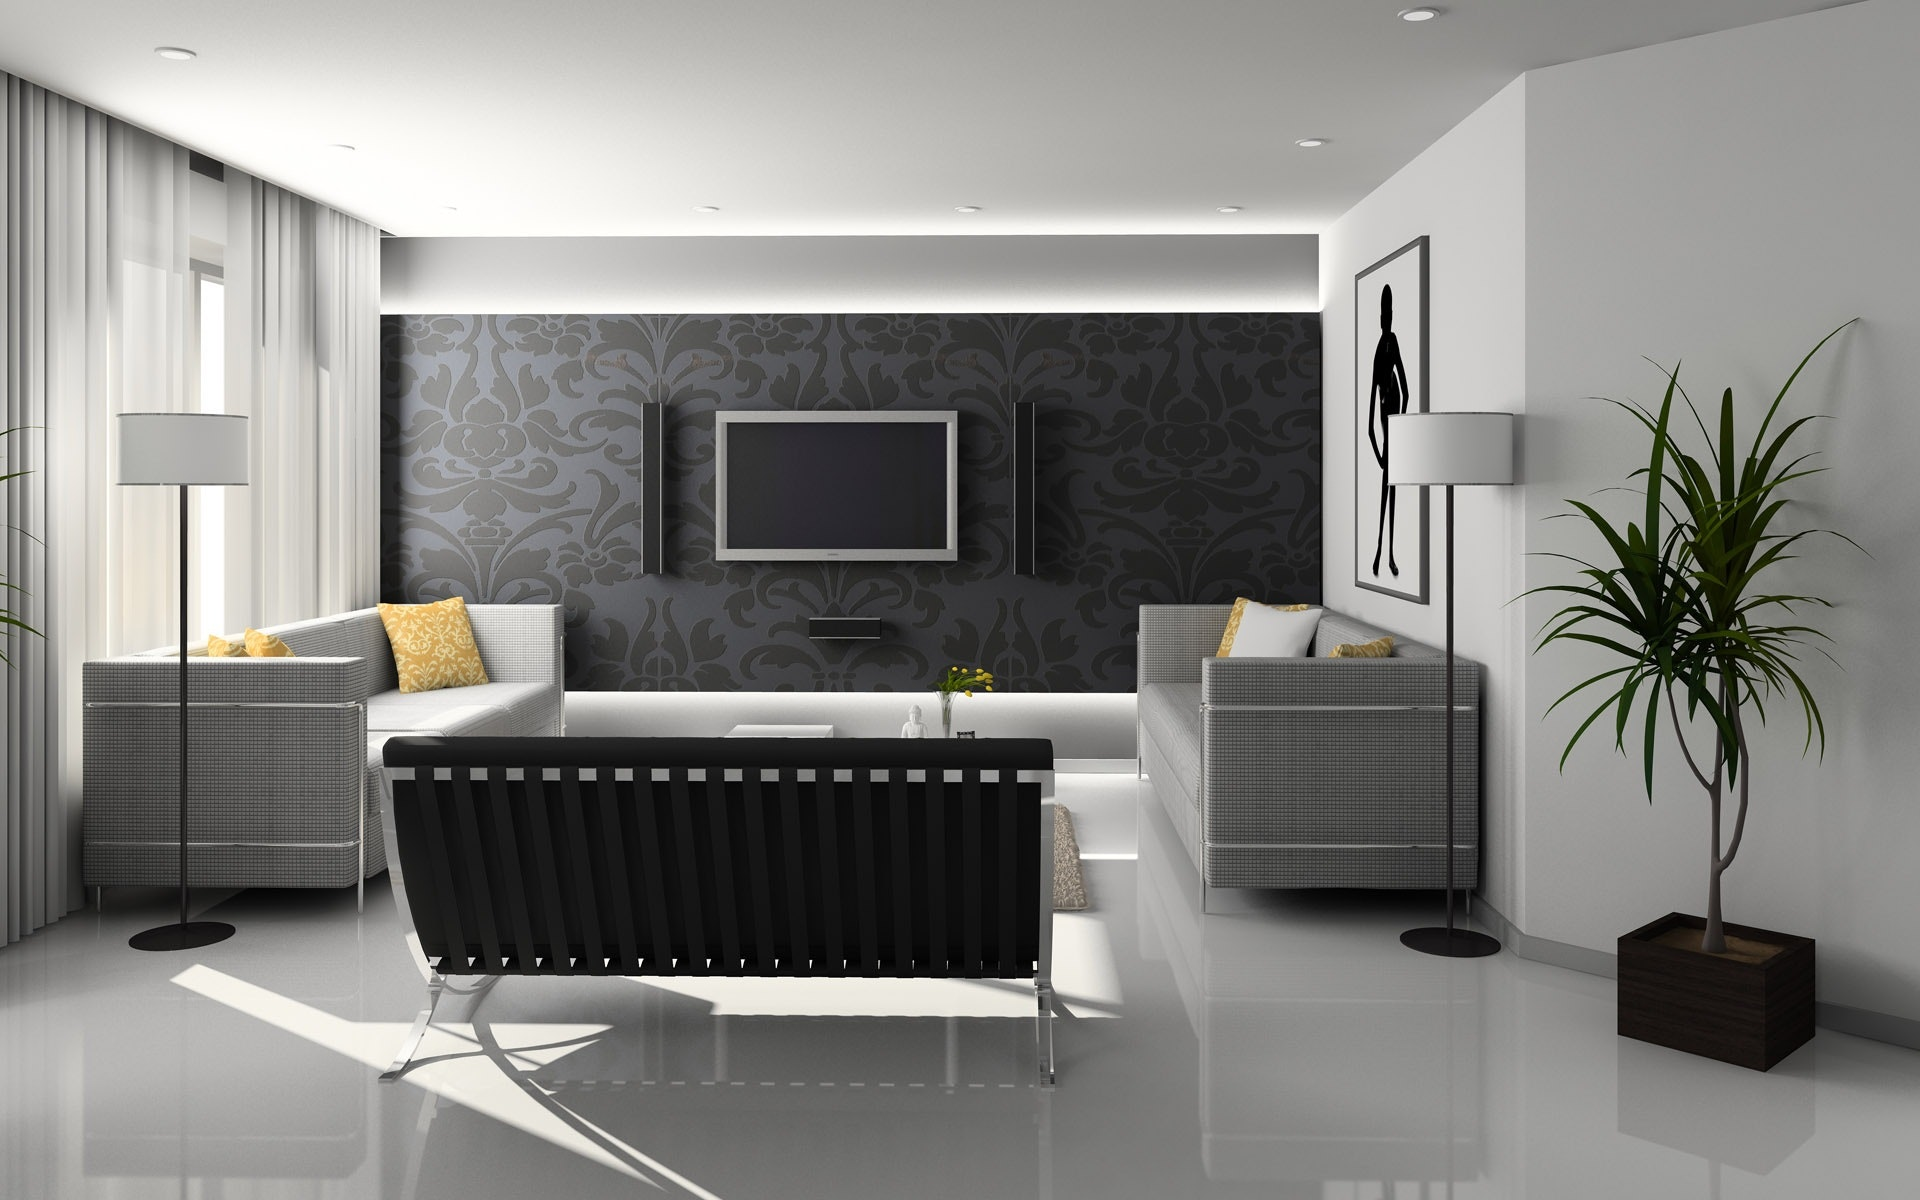 Does a Homeowners Insurance Policy Apply to Your Second Home?